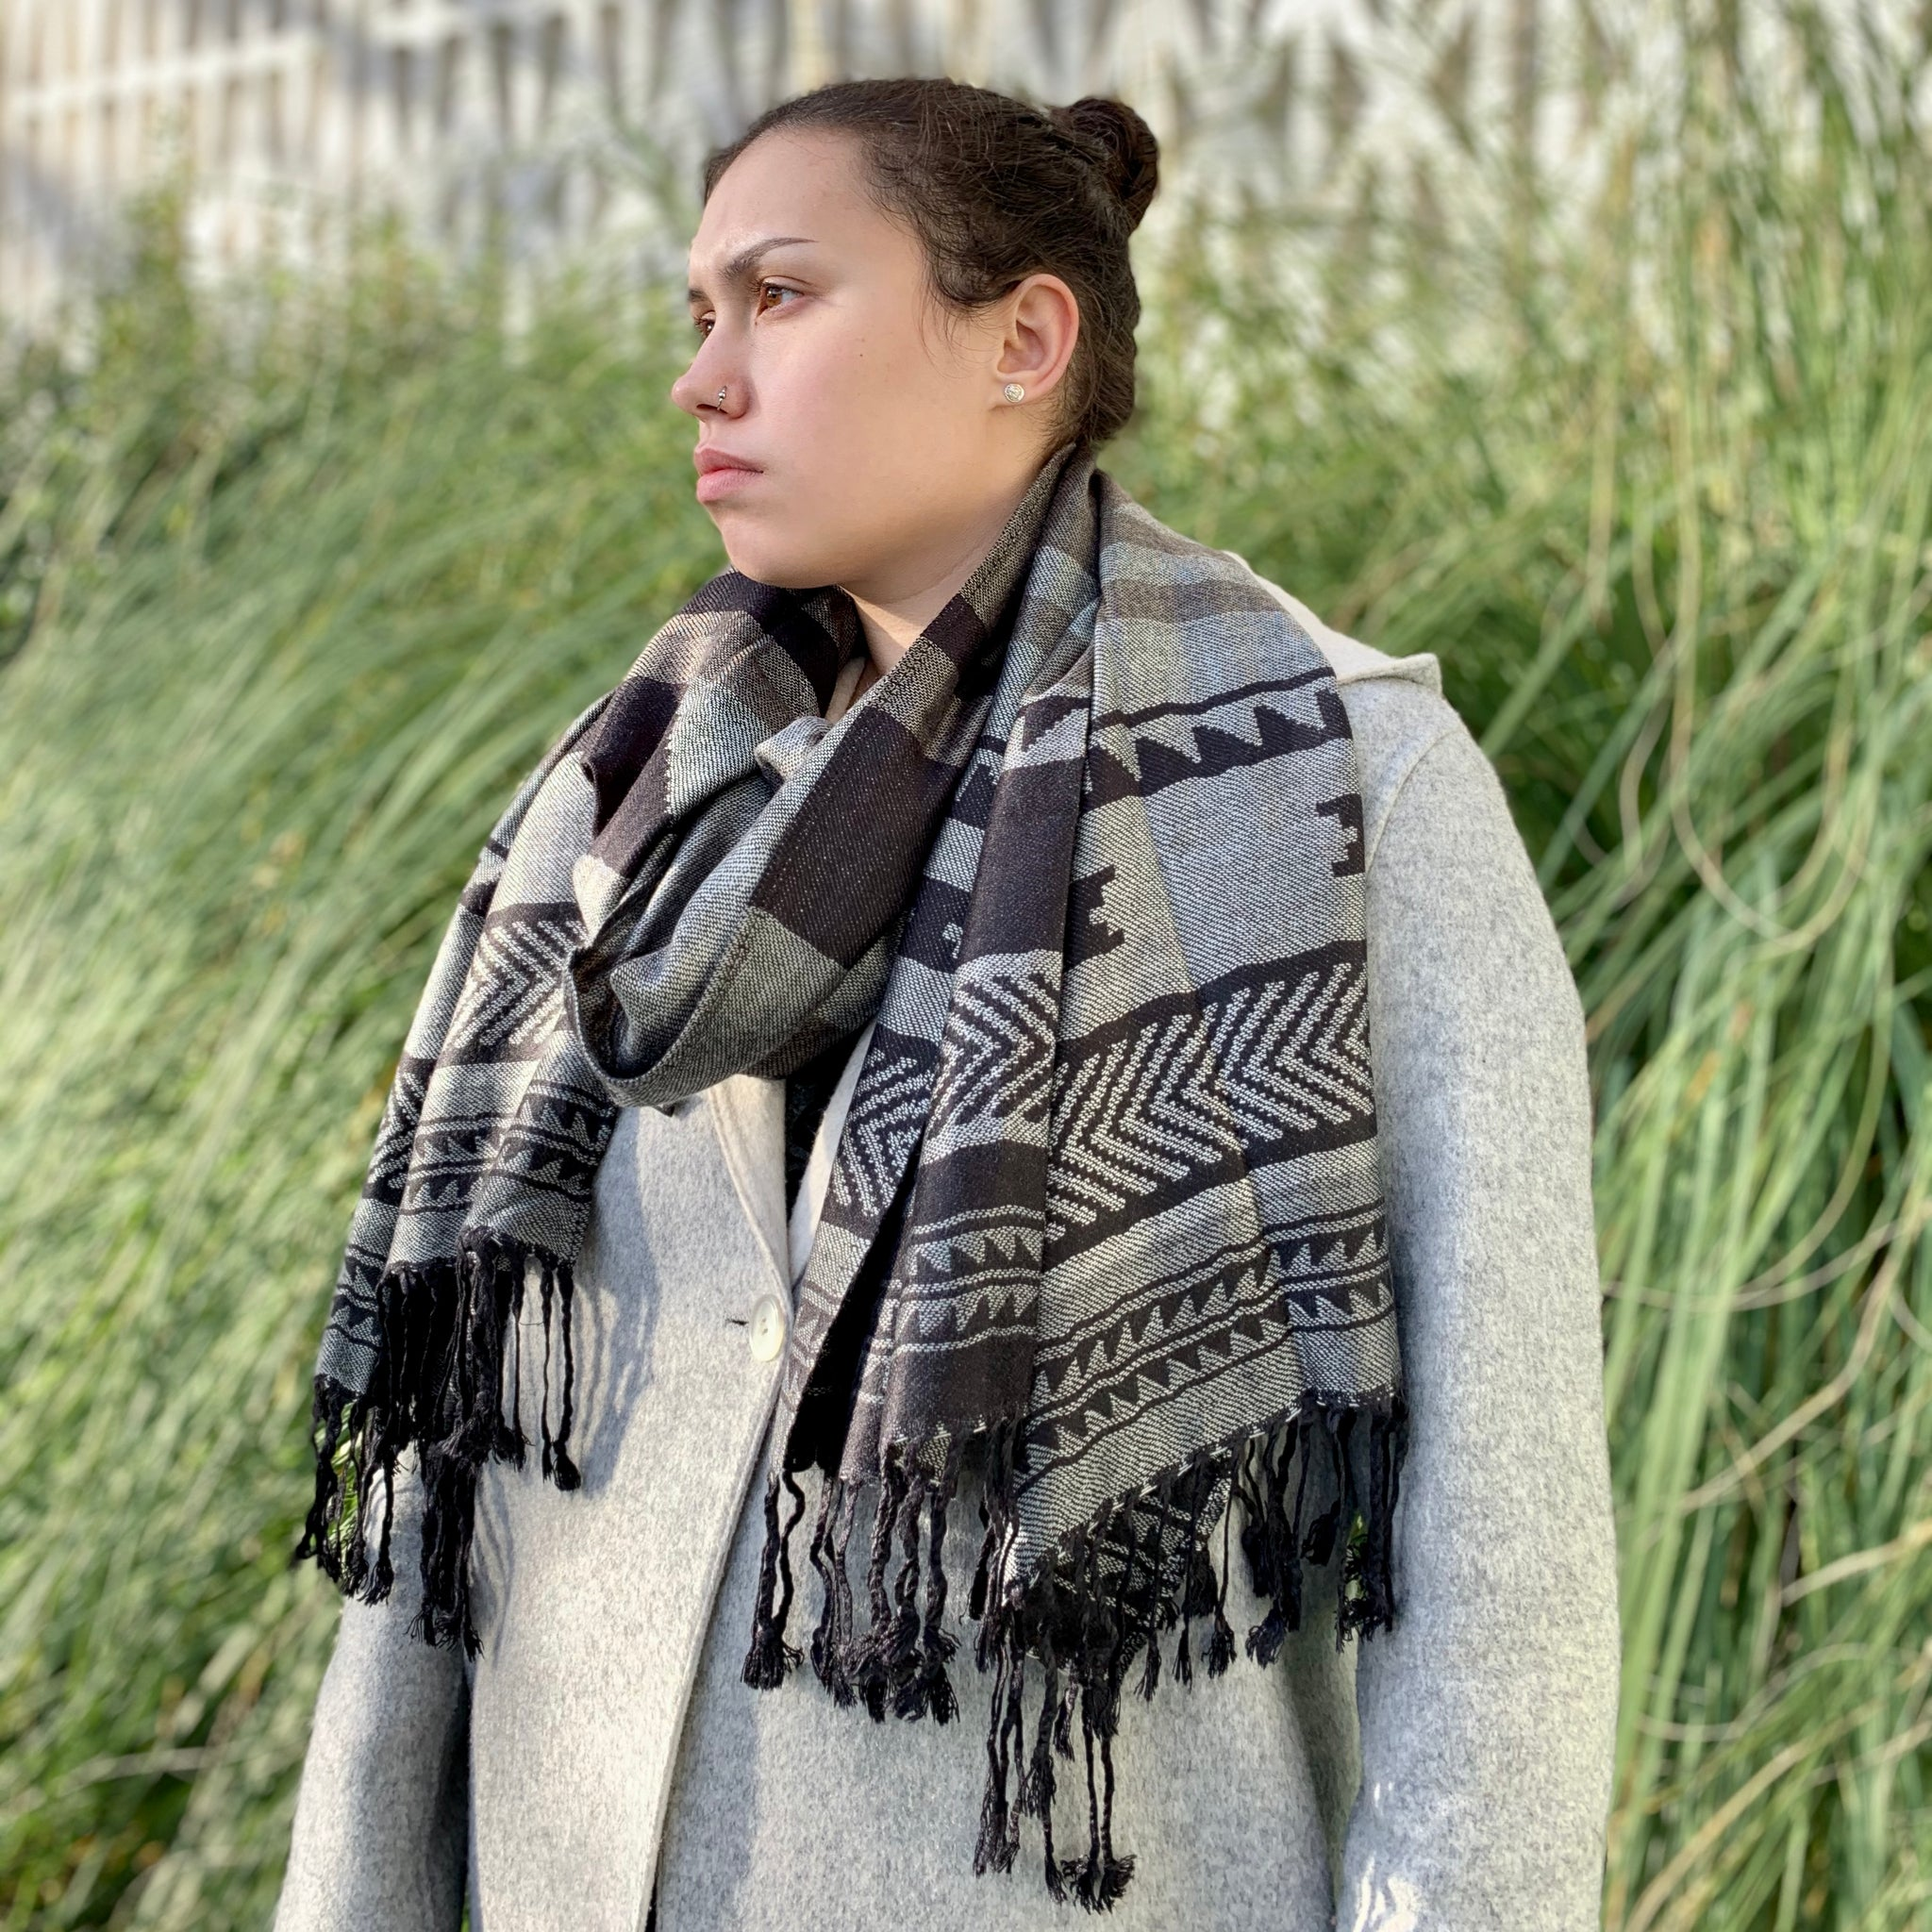 Salish Weaving Jacquard Shawl by Leila Stogan, Musqueam/Coast Salish